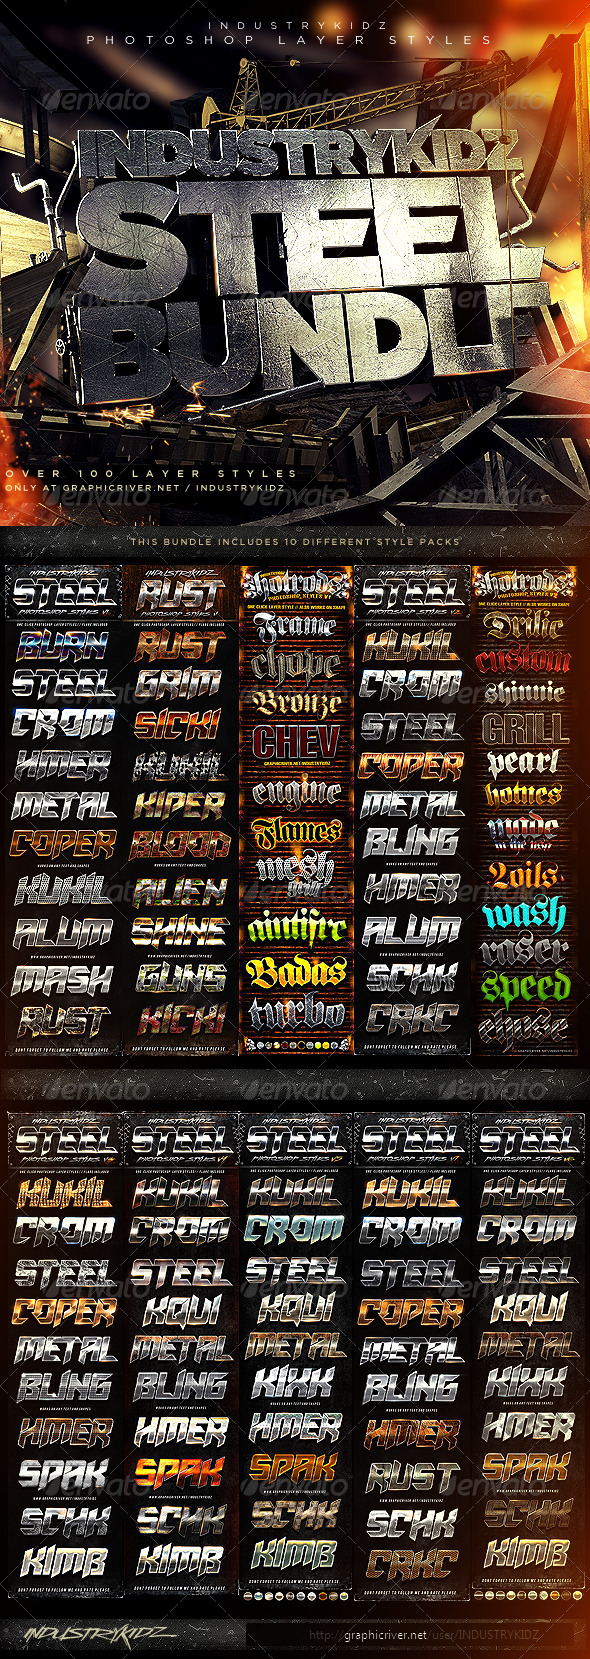 Metal Steel Photoshop Layer Styles Bundle - Text Effects Styles